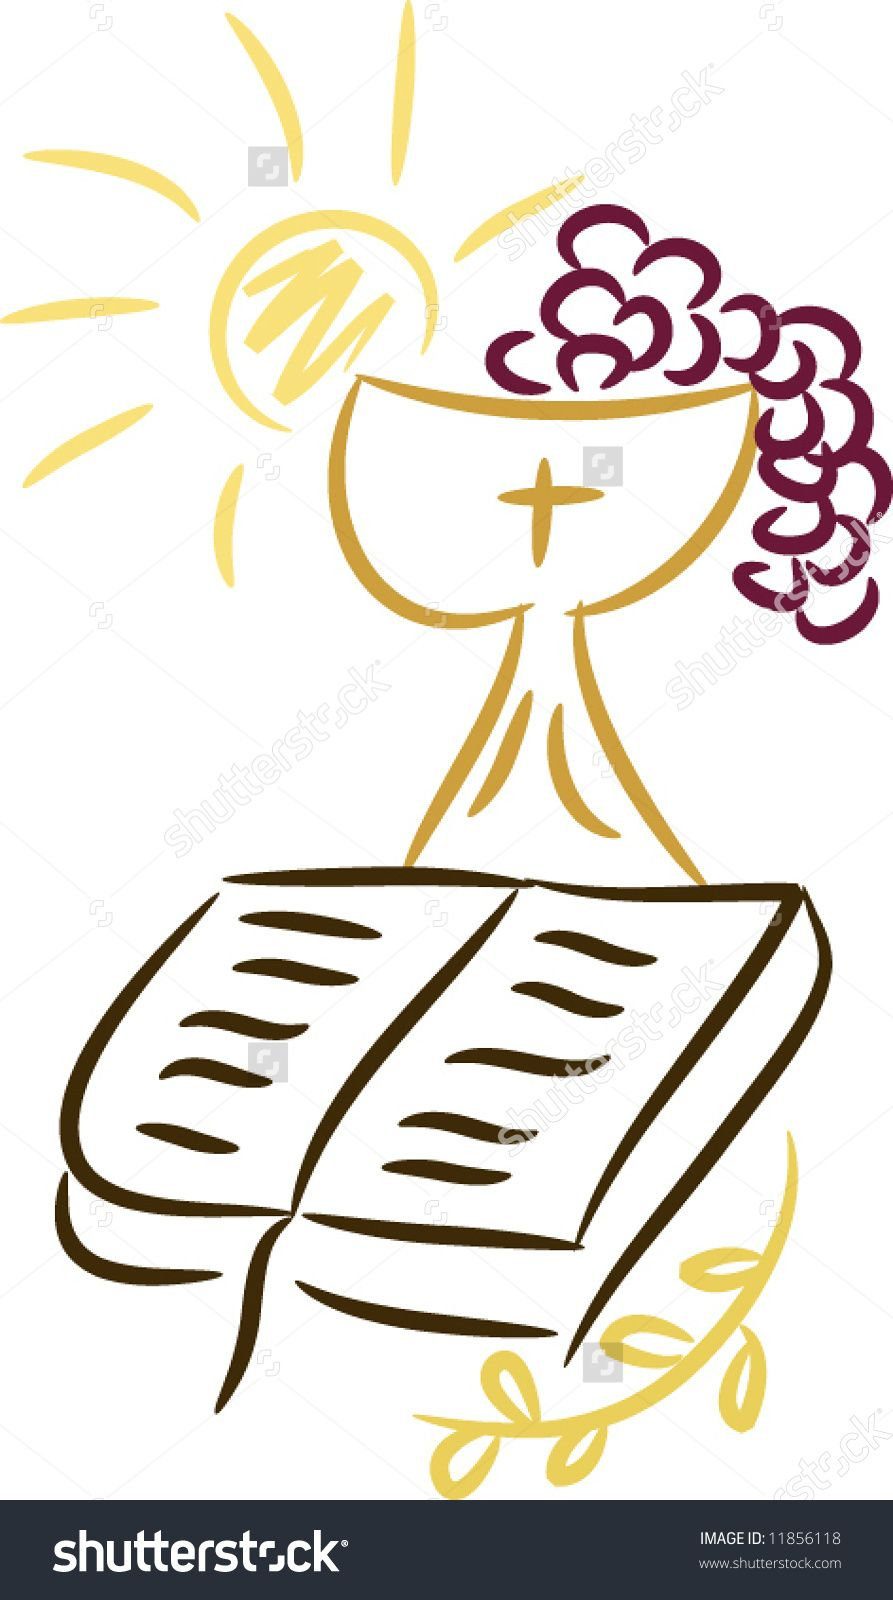 Symbols of religion and. Chalice clipart bible